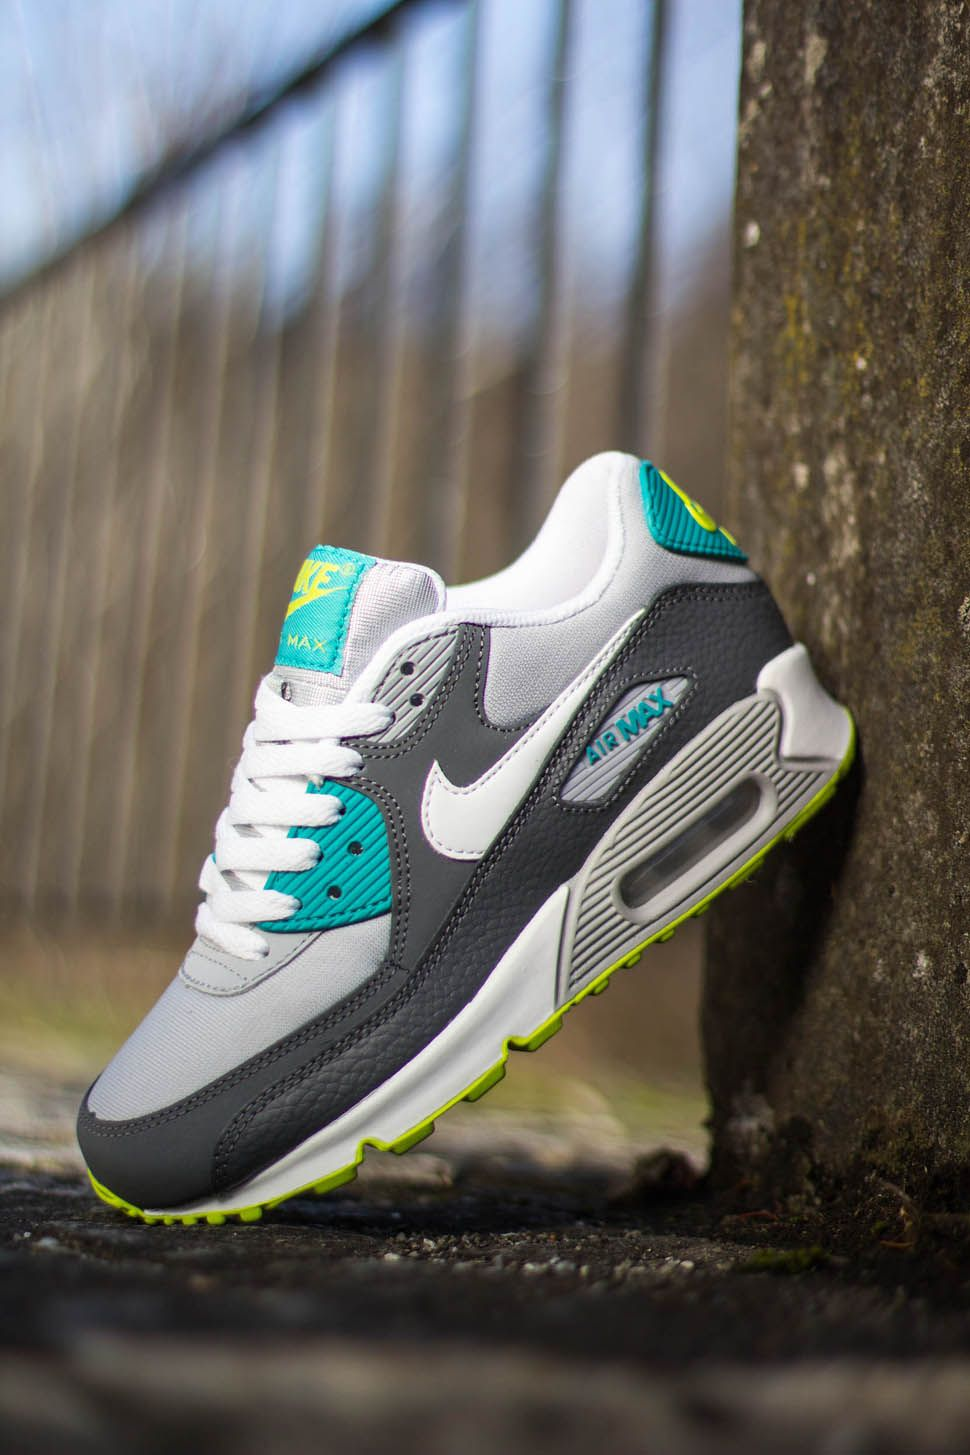 Nike Air Max 90 Green Metallic Yellow Grey White